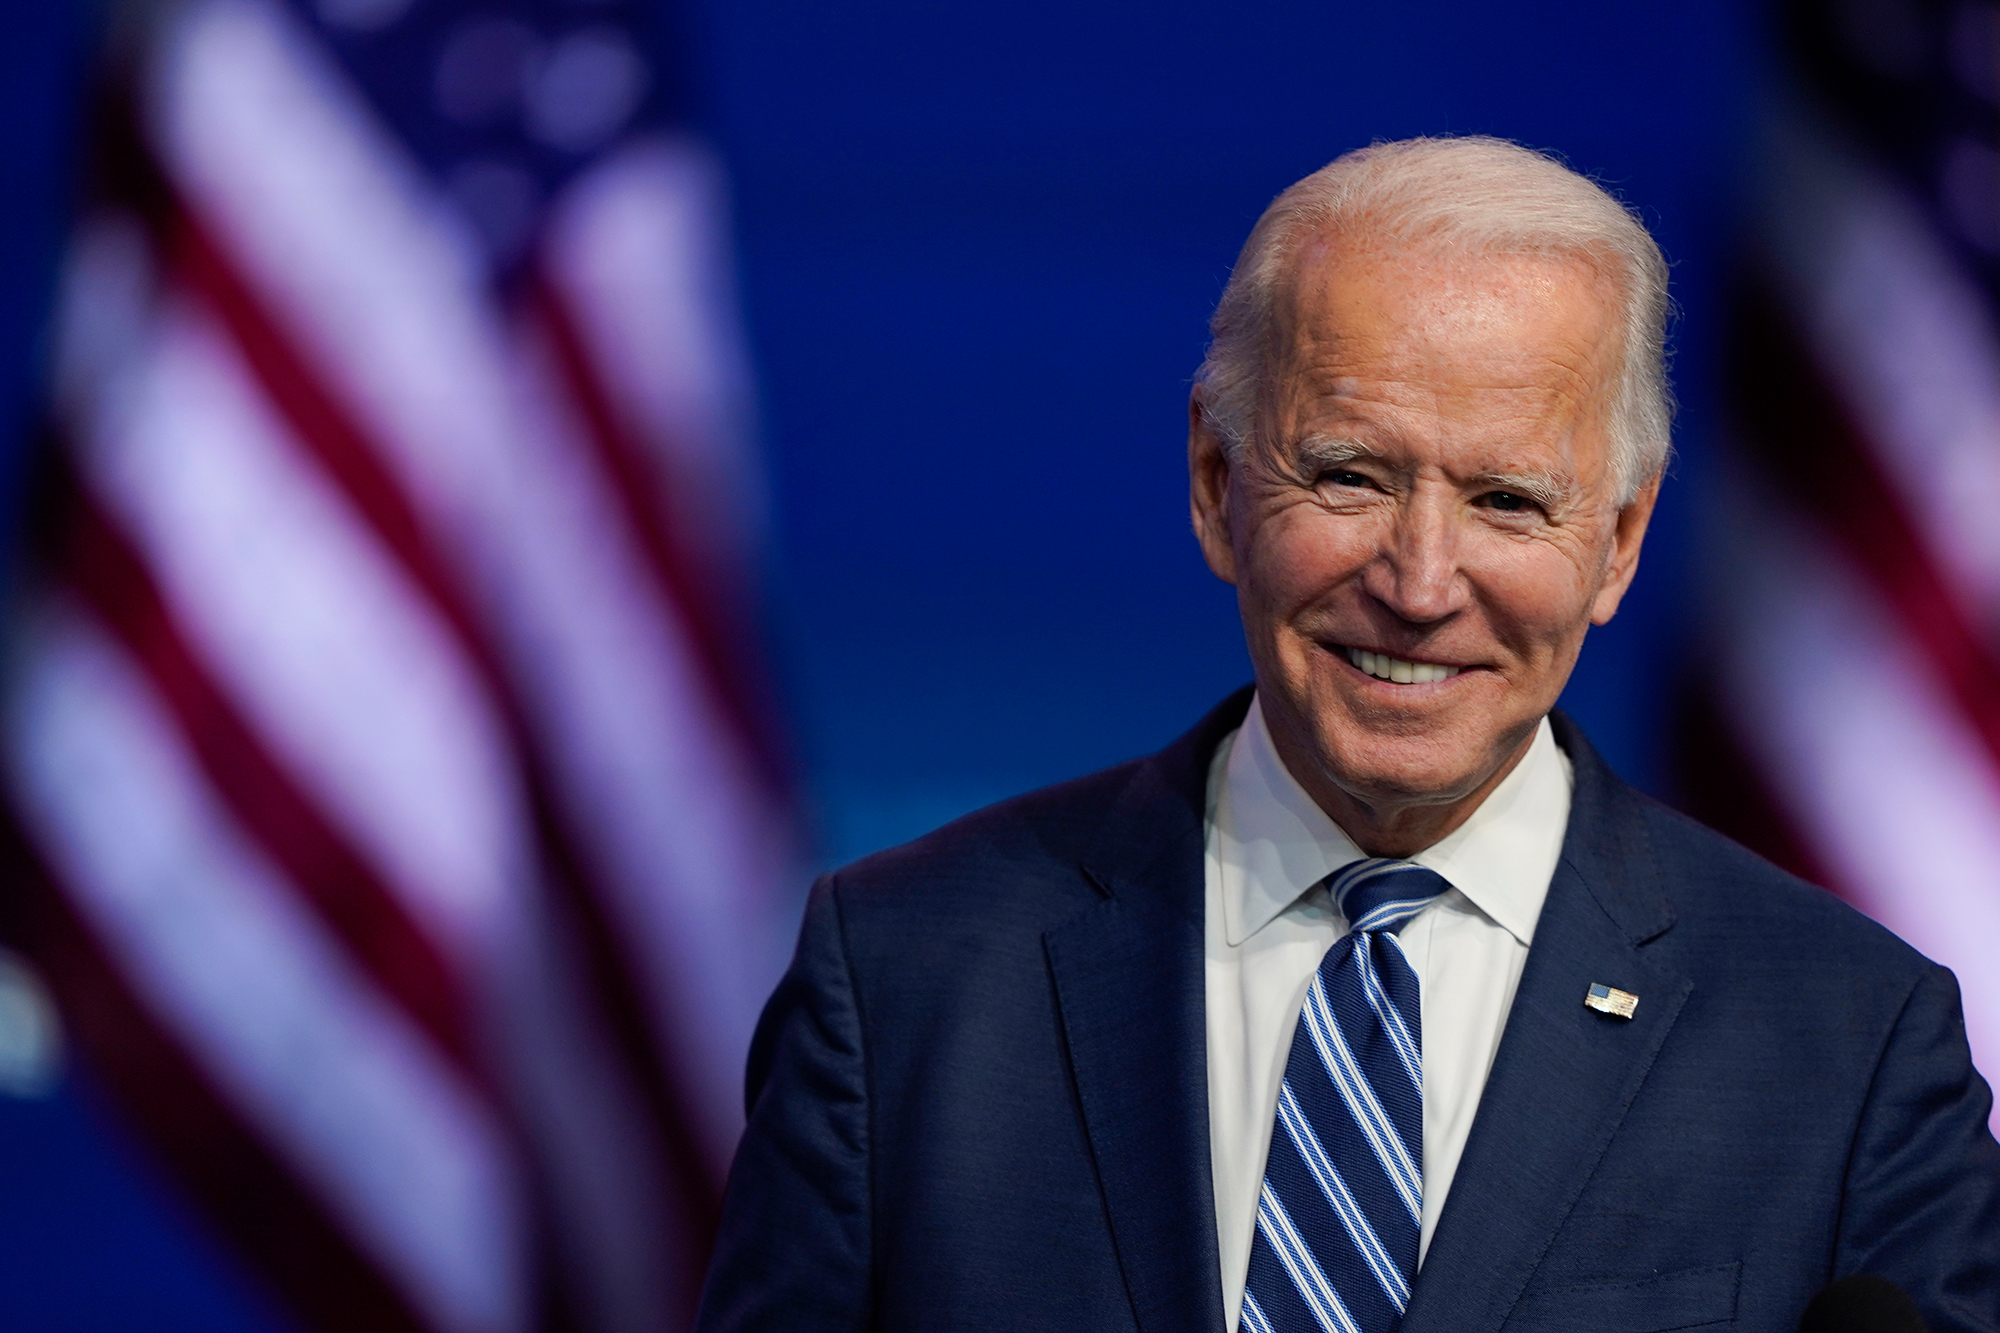 Twitter to transfer @POTUS account to Joe Biden on Inauguration Day